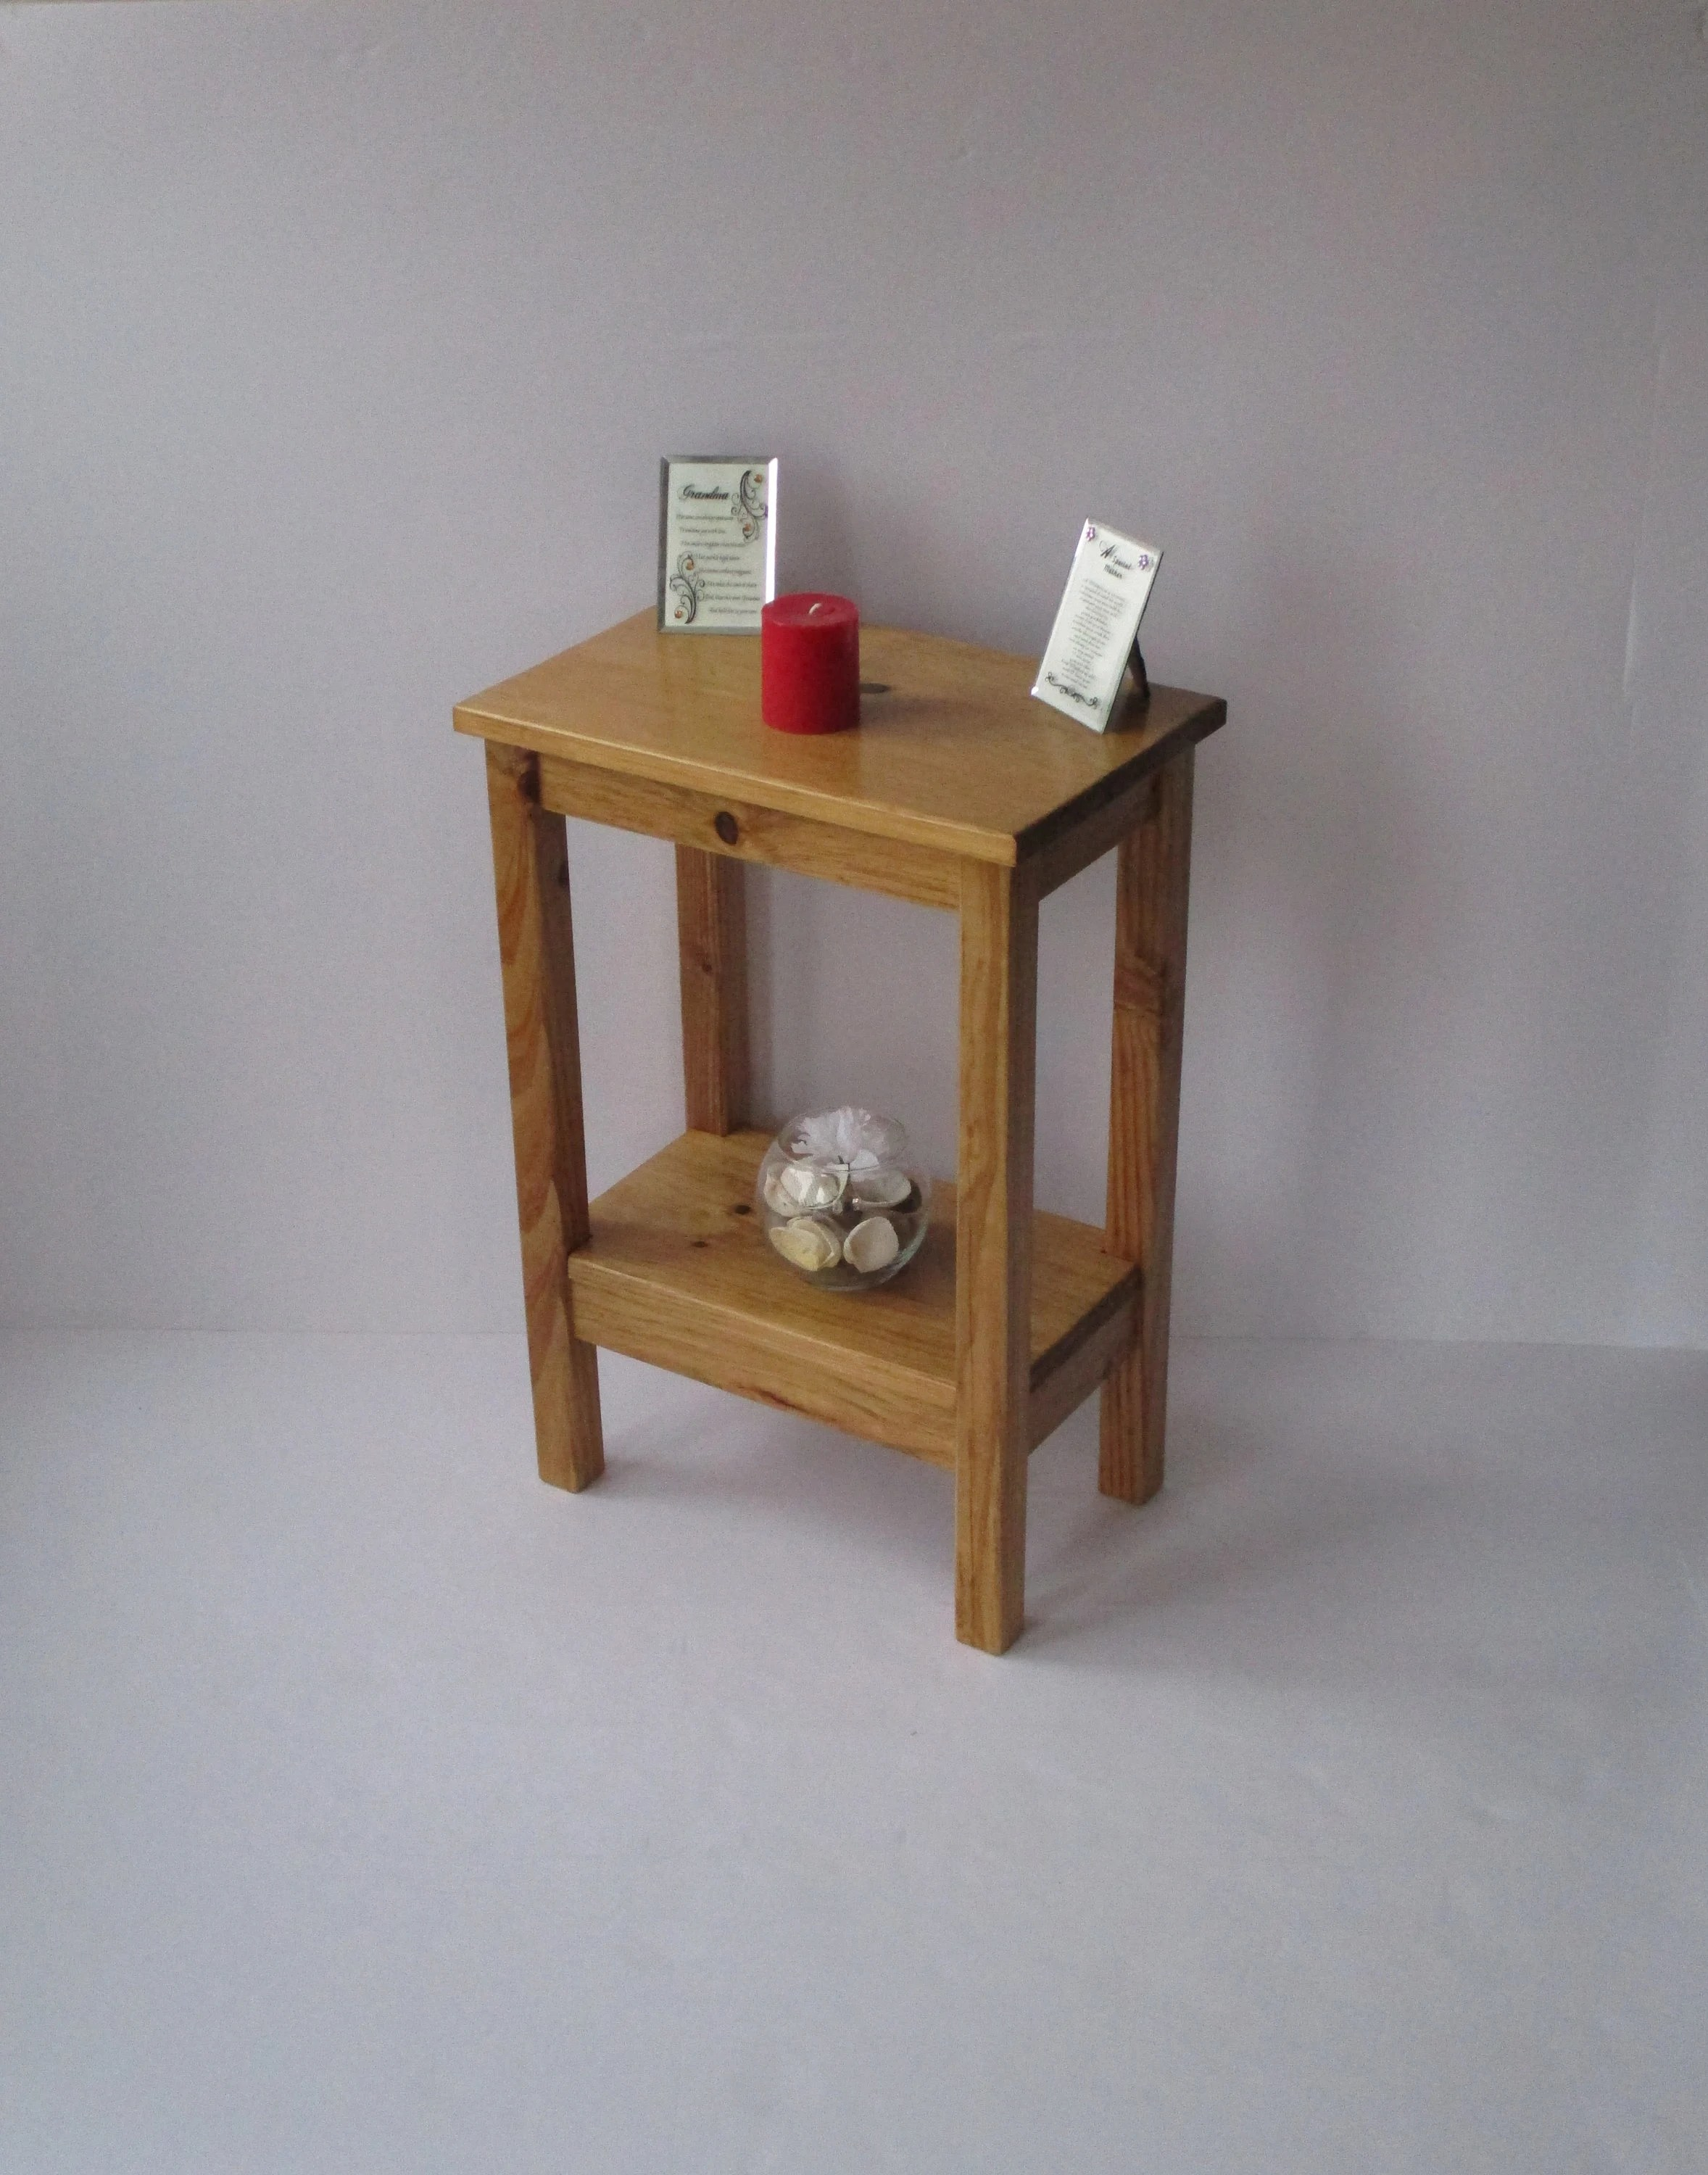 Rustic Wood End Table Rustic End Table Small End Table Side Table Rustic Nightstand Bedside Table Golden Oak Stain